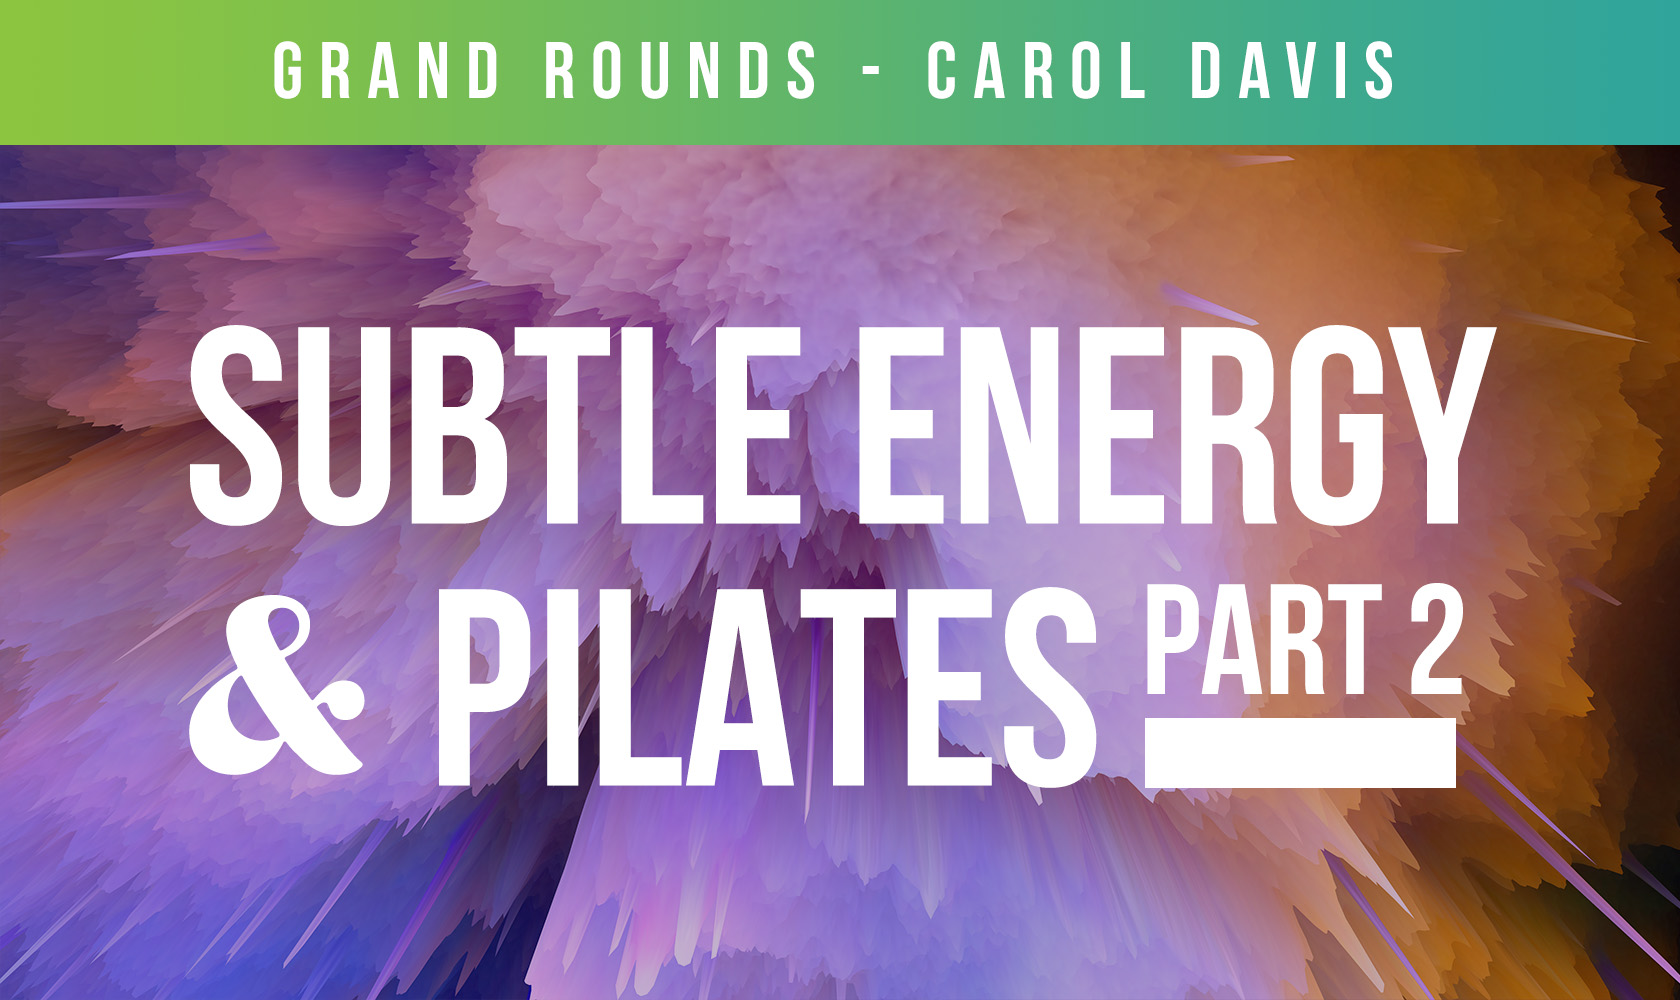 Grand Rounds, Subtle Energy & Pilates: Part 2